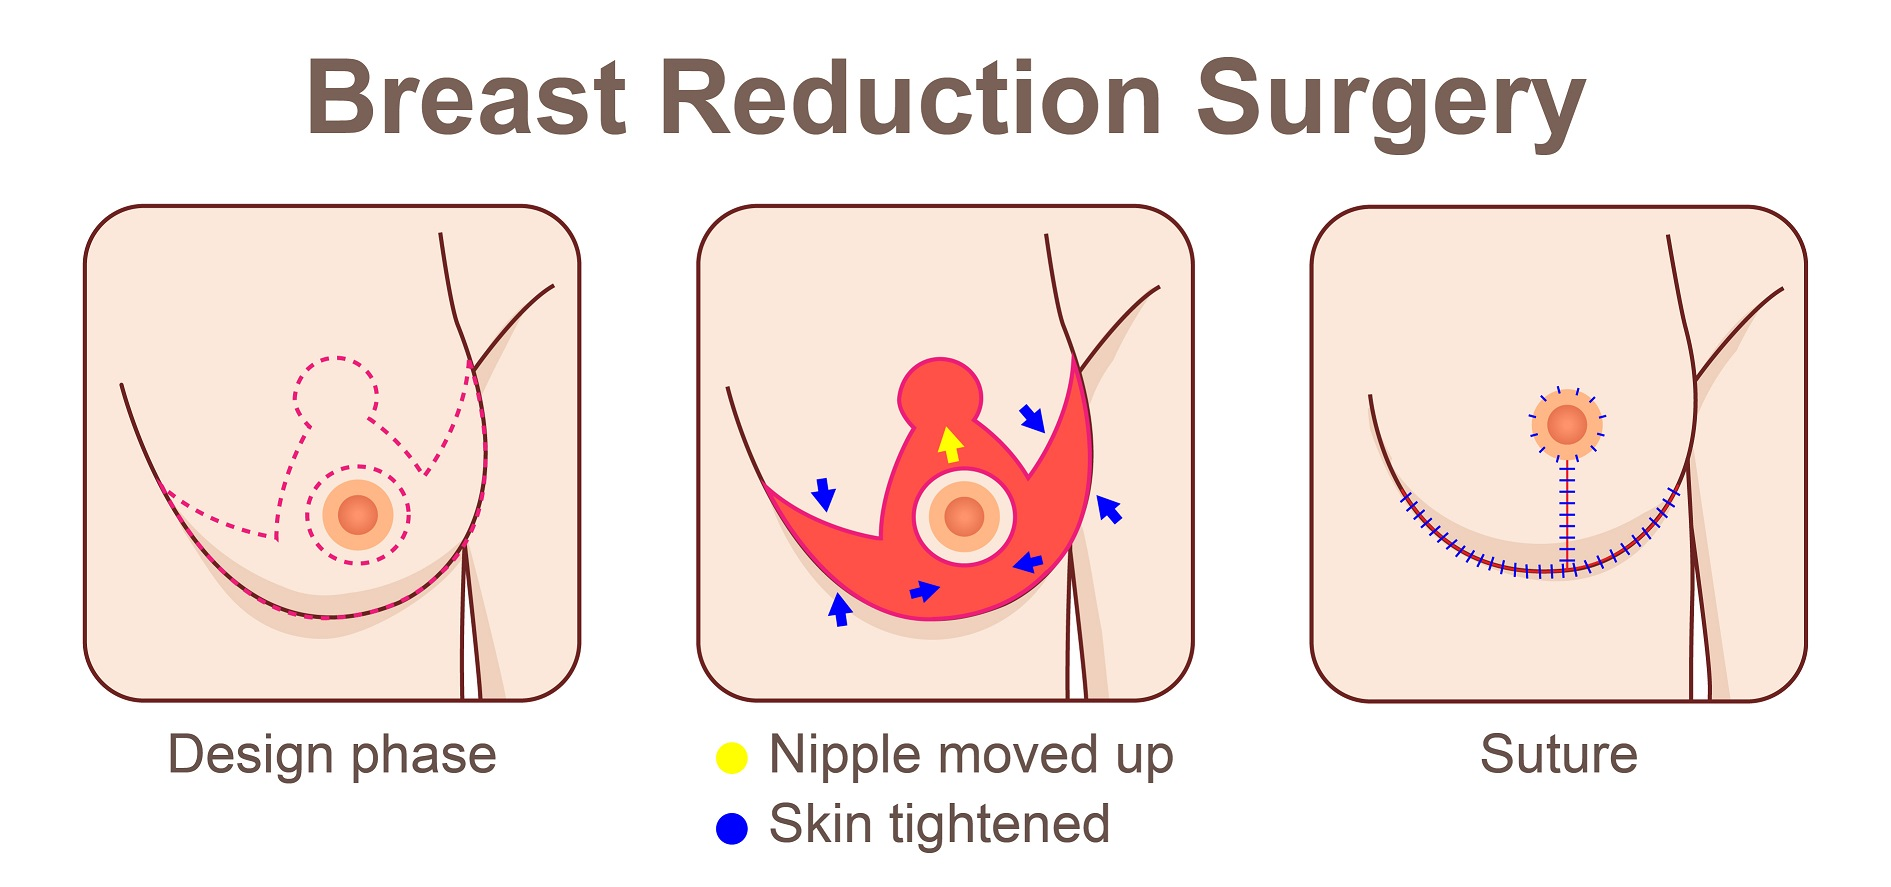 What should you know about breast reduction surgery before you go for the surgery?